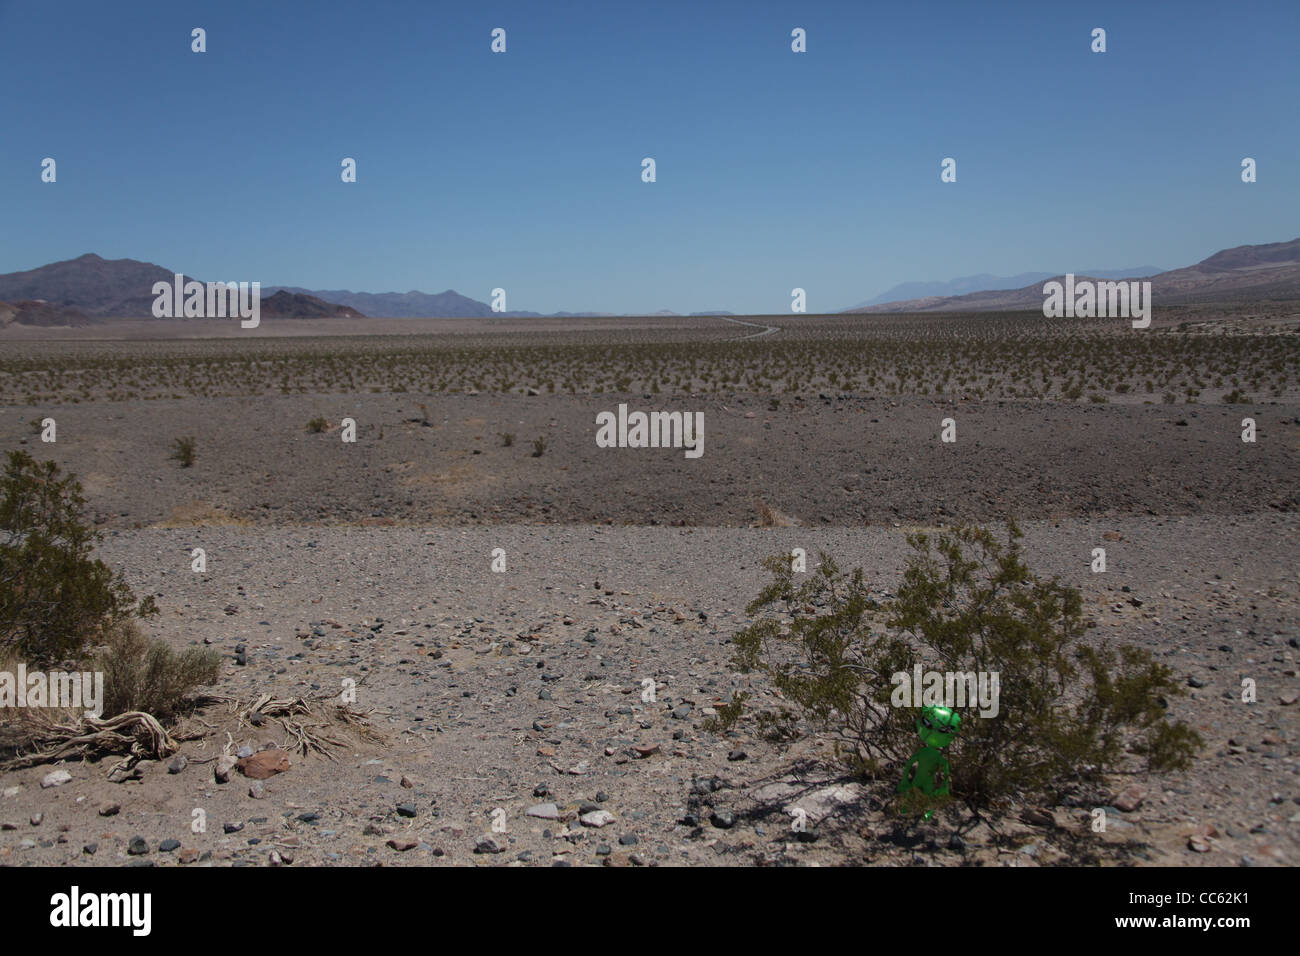 The valley floor of death valley with a small alien hiding in the bush - Stock Image